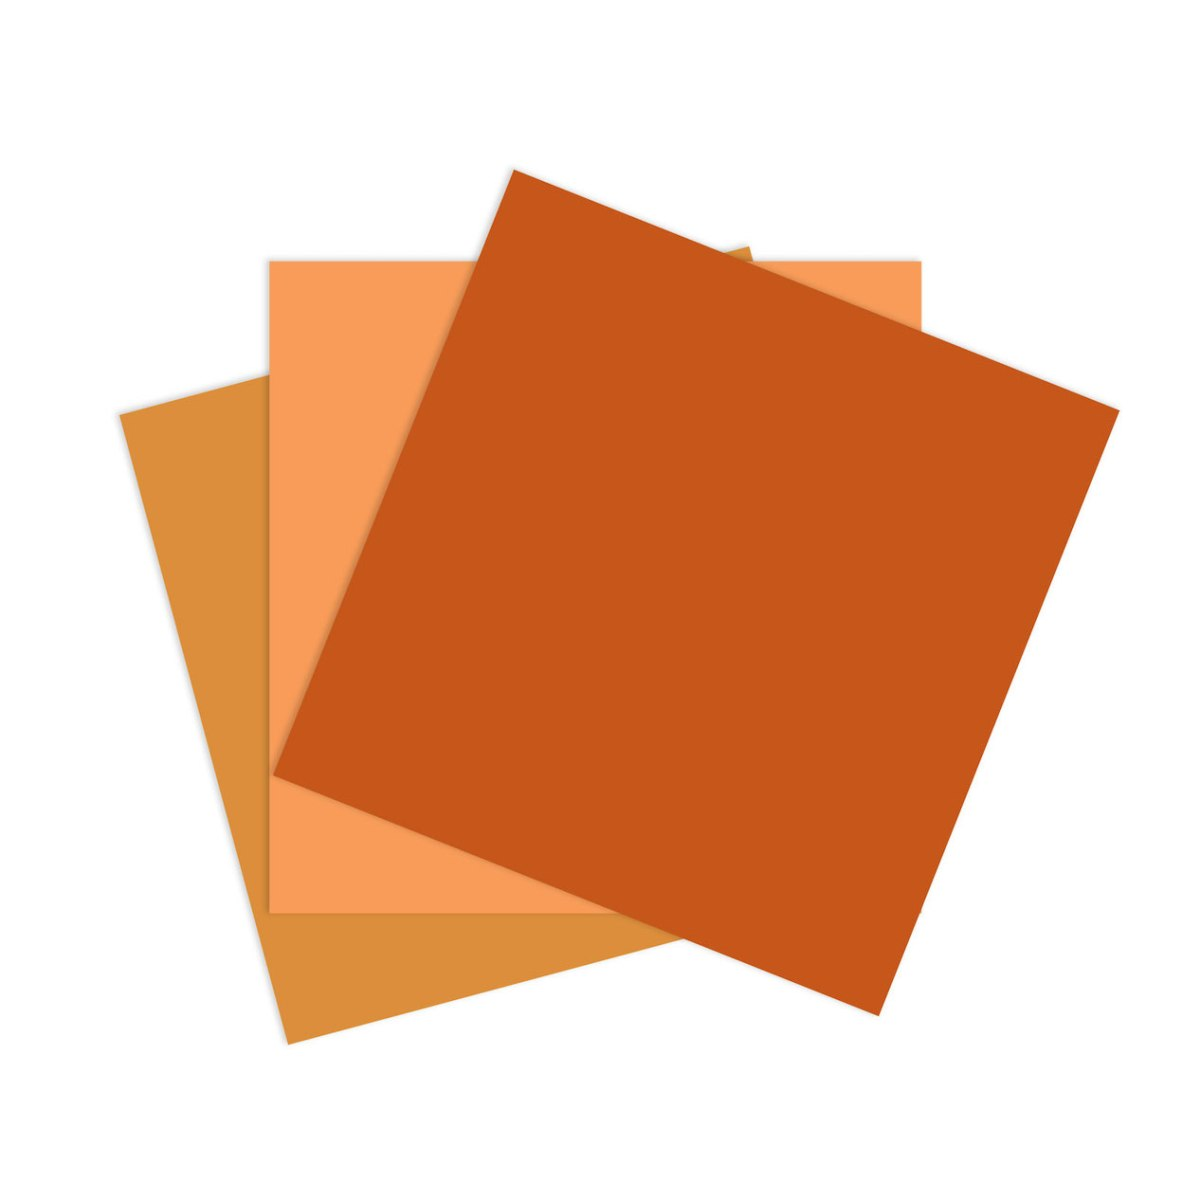 Cardstock Carnival #ctmh #closetomyheart #cardstock #exclusivecolorpalette #exclusivecolourpalatte #ctmhcolors #cmthcolours #goldrush #nectarine #paprika #orange